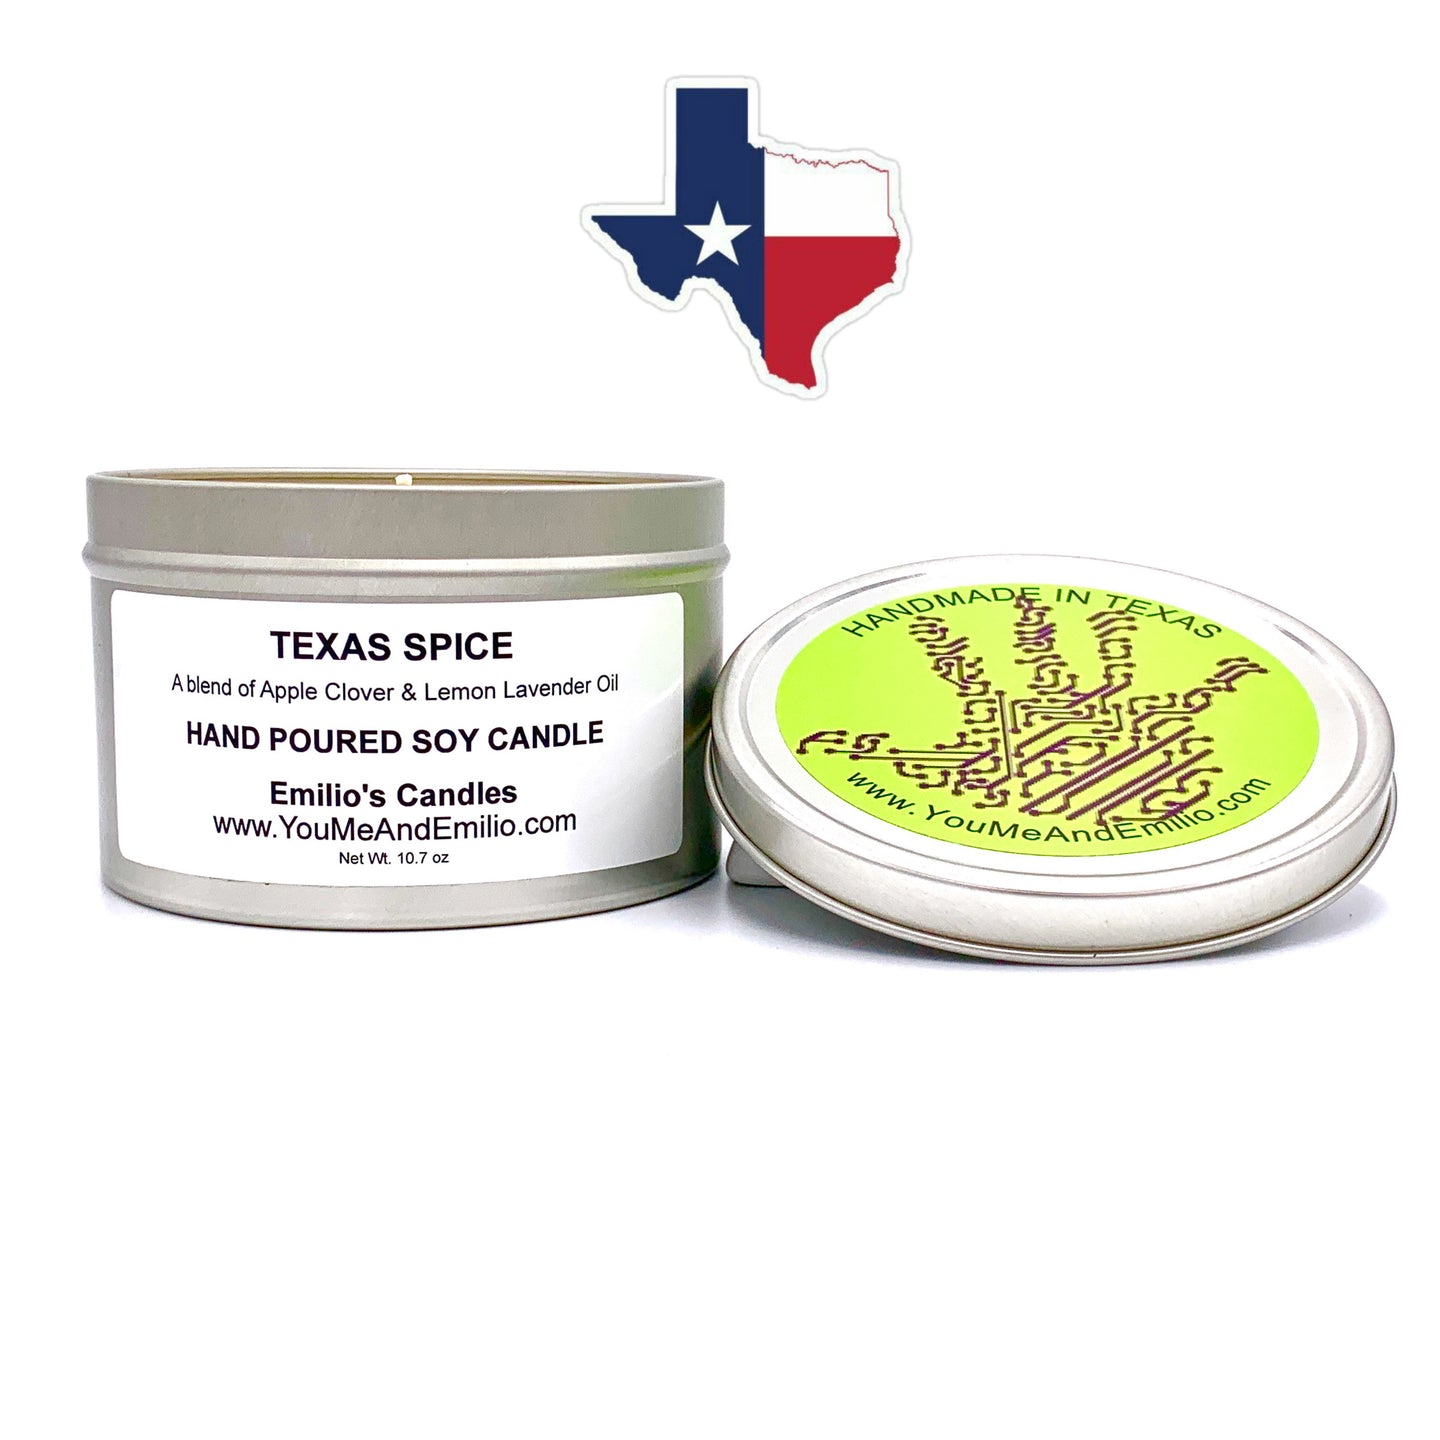 Texas Spice Soy Candle